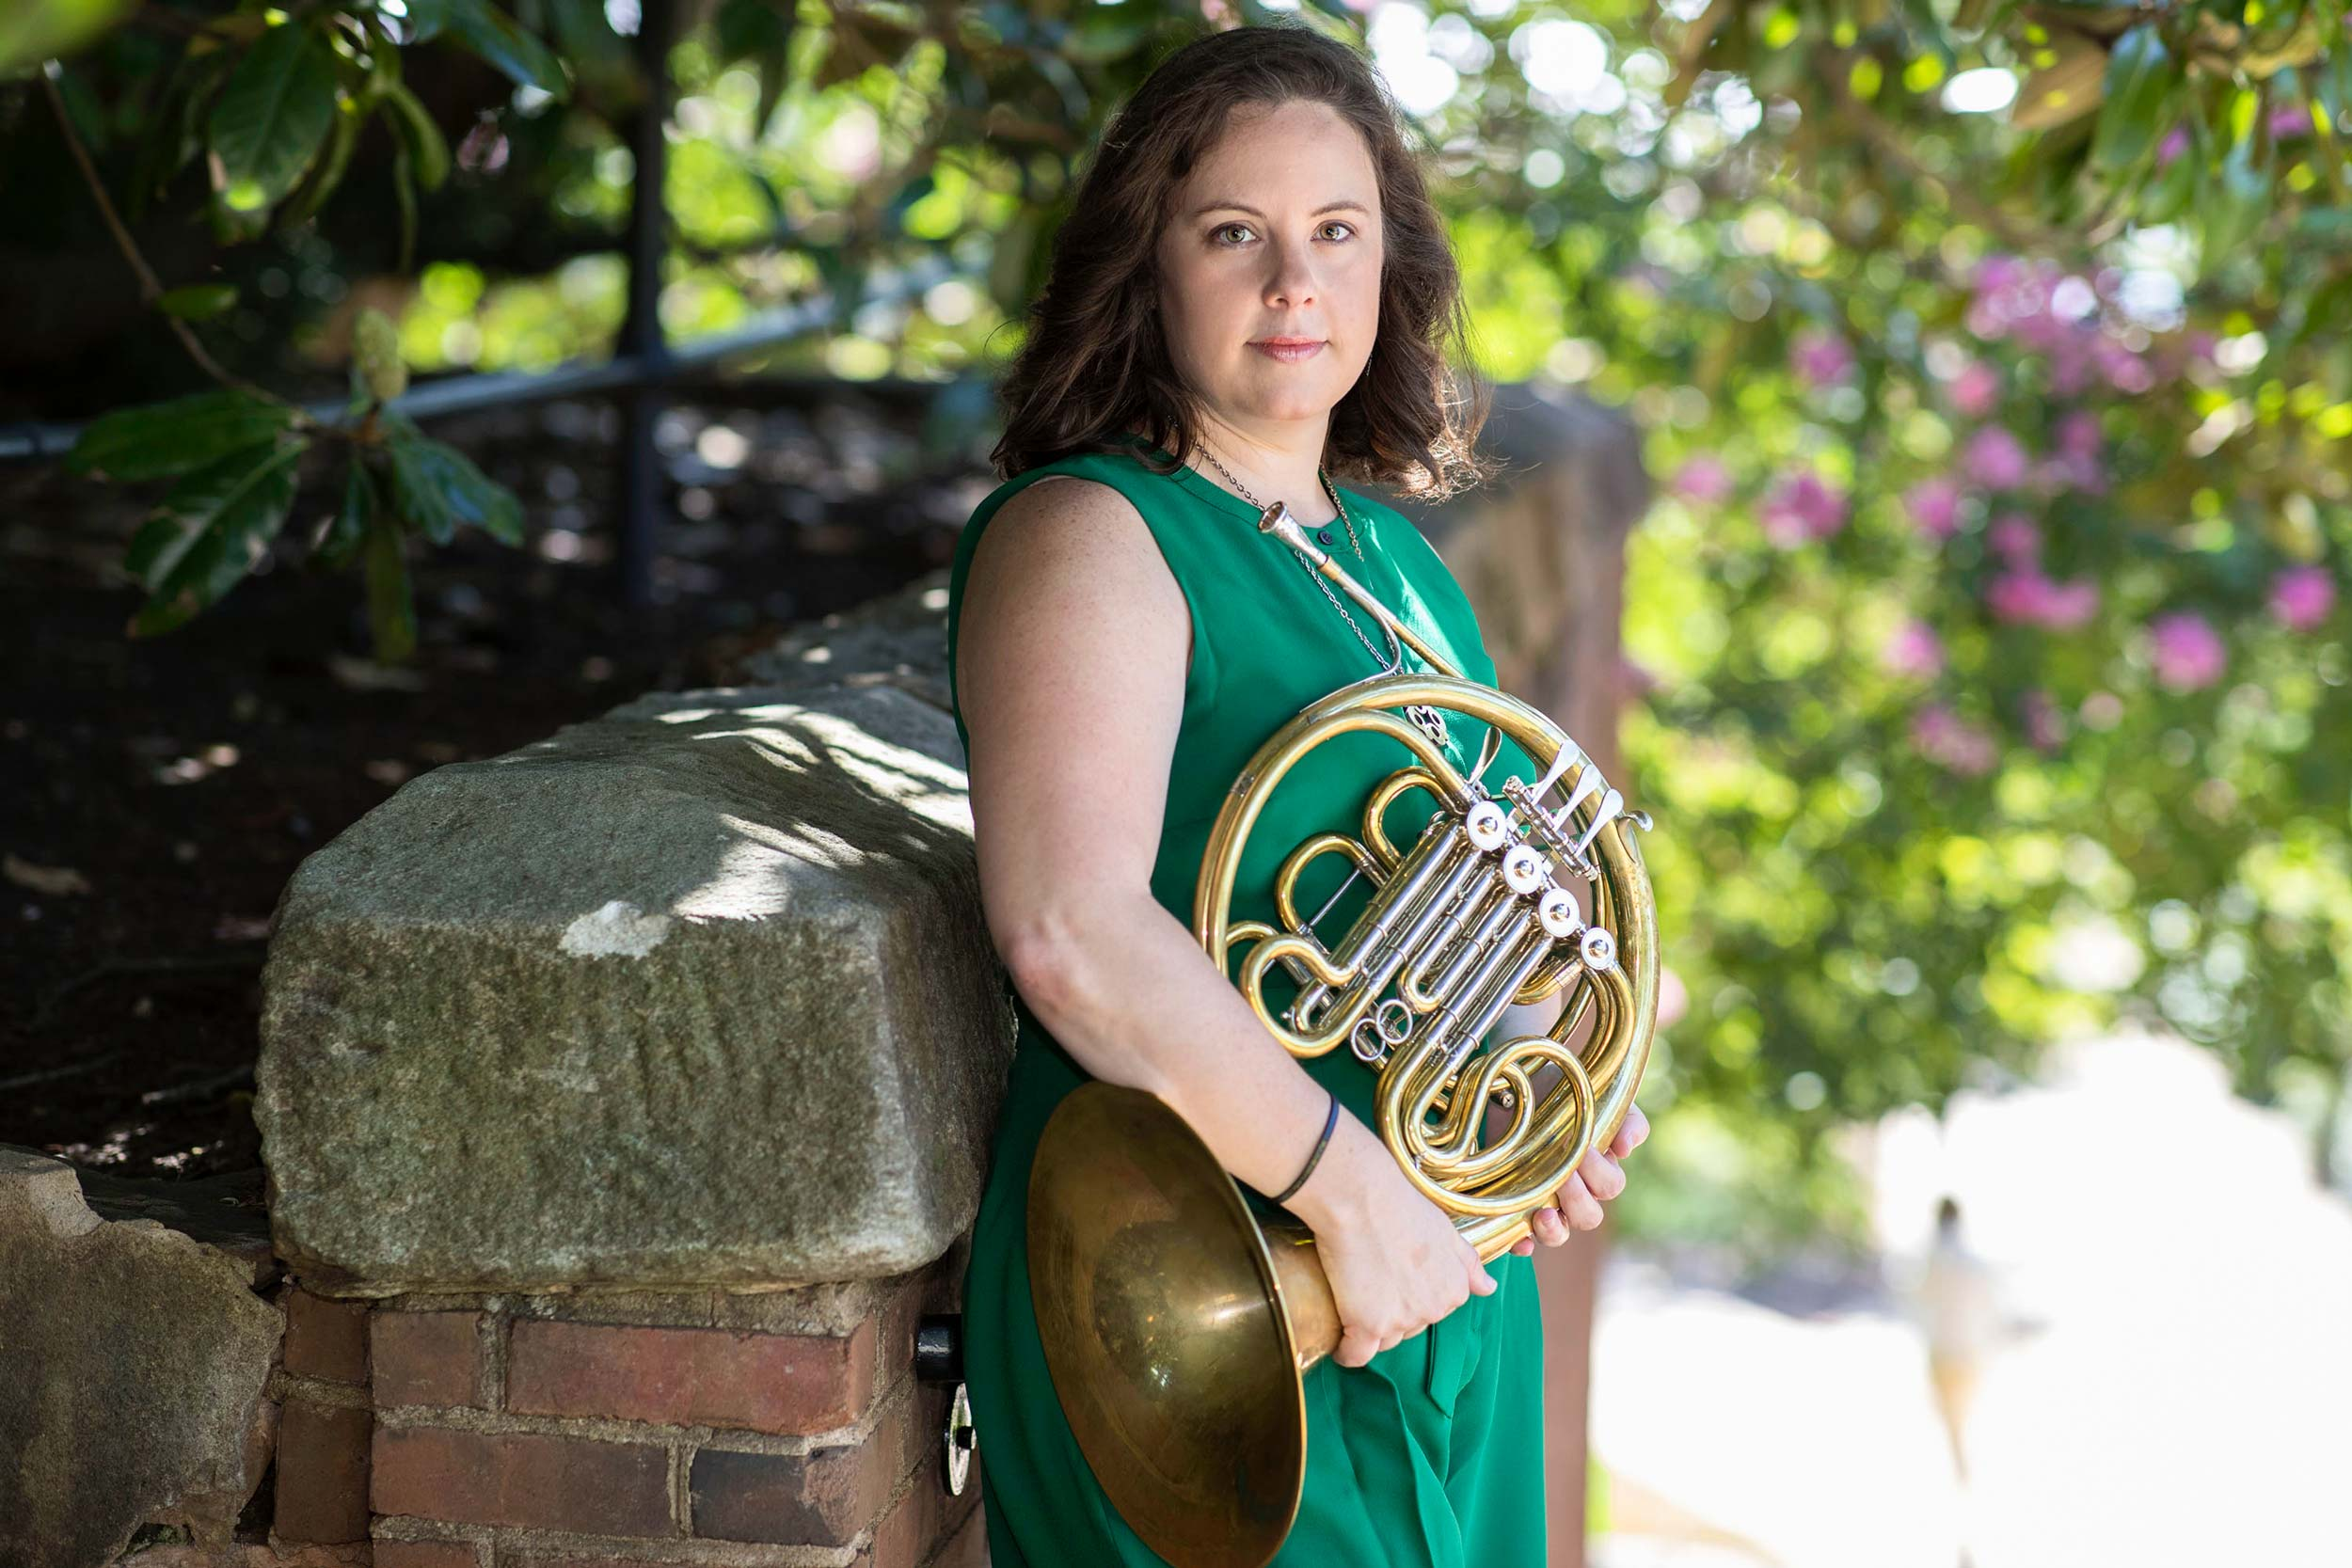 Katy Ambrose is an assistant professor of performance in UVA's McIntire Department of Music and an acclaimed French horn player.